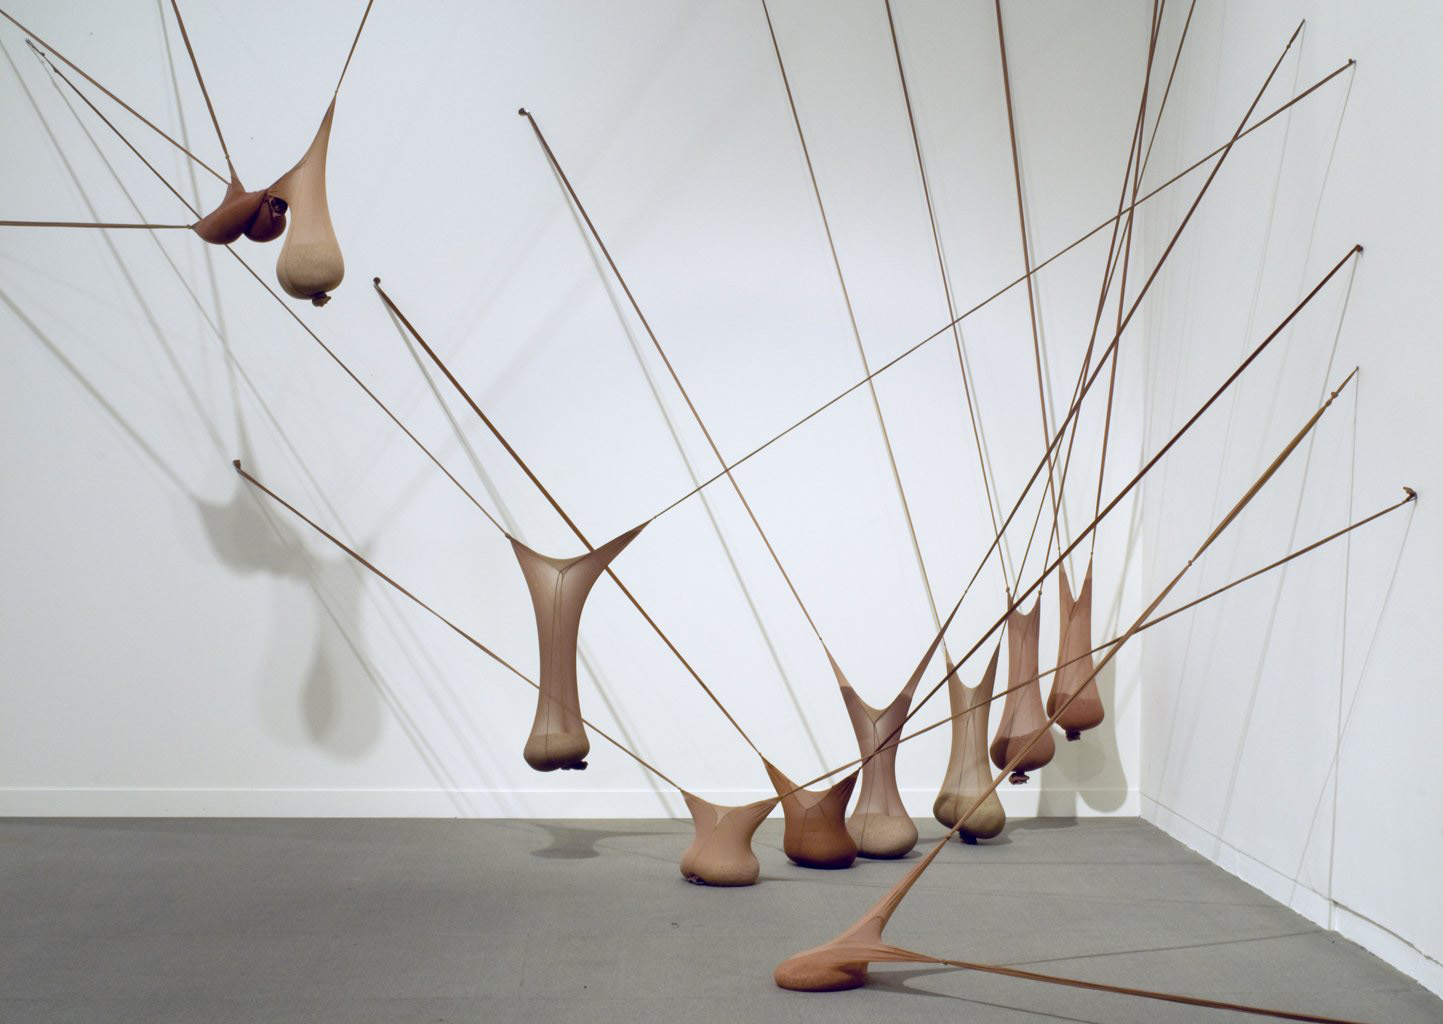 Senga Nengudi, <em>RSVP I</em>, 1977. Nylon mesh, sand. Dimensions variable.